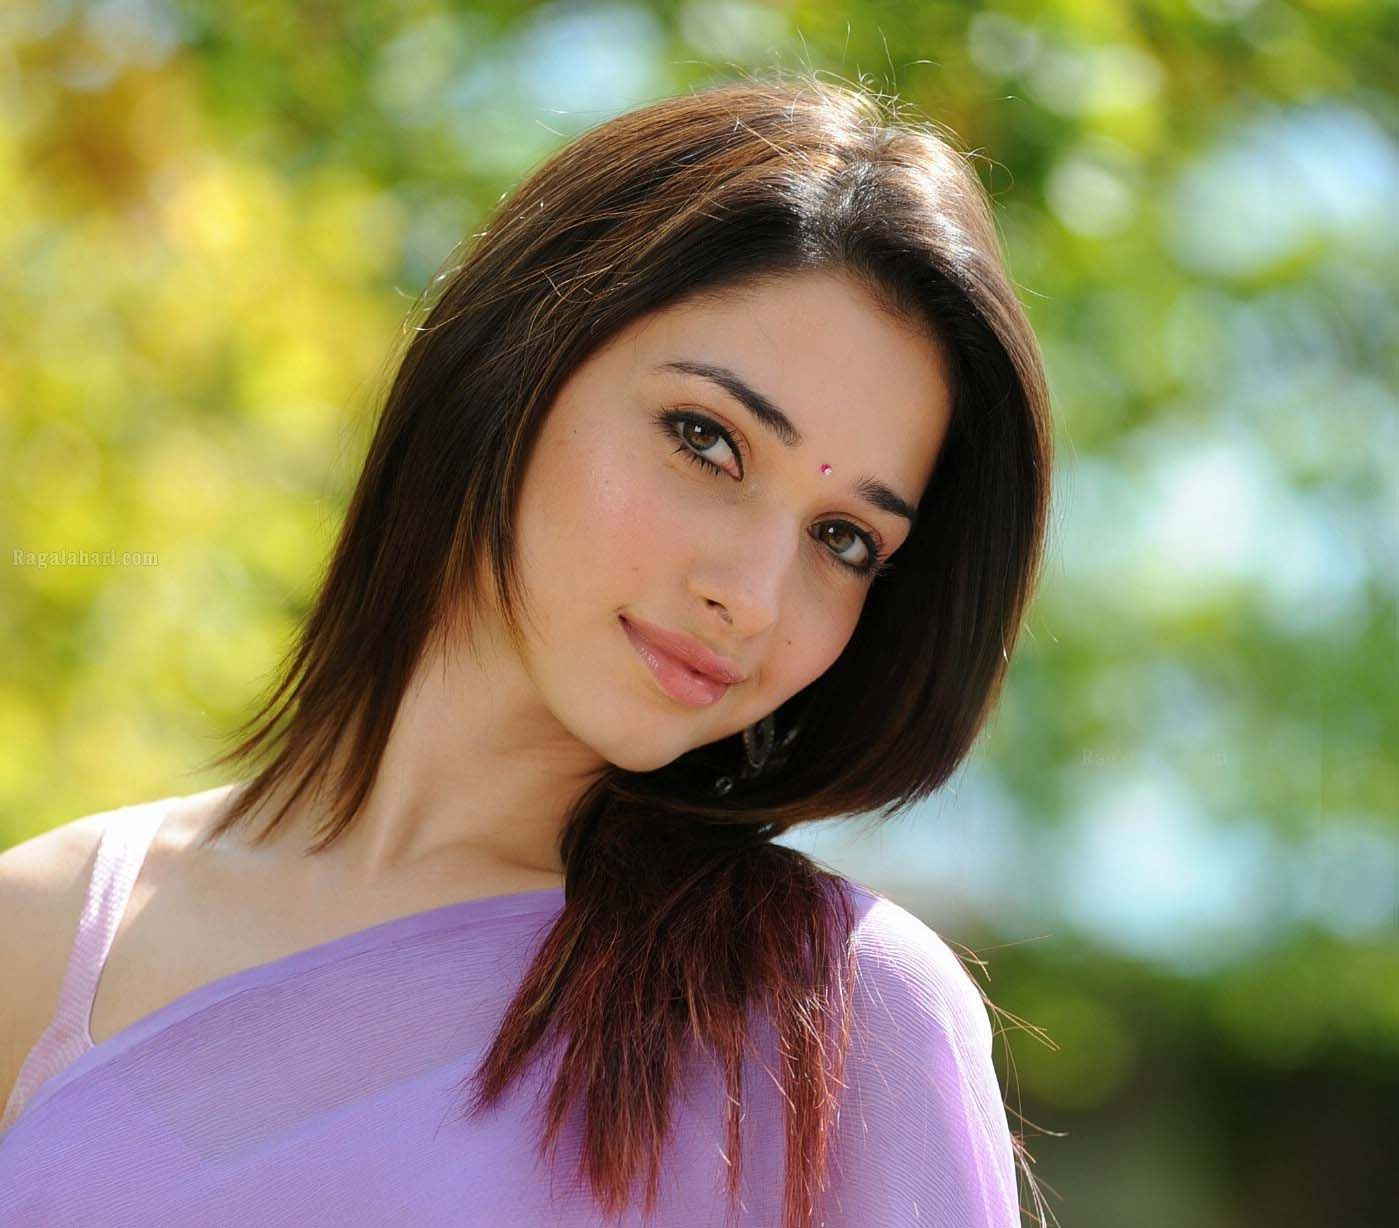 tamannaah bhatia hot & sizzling navel pictures & more